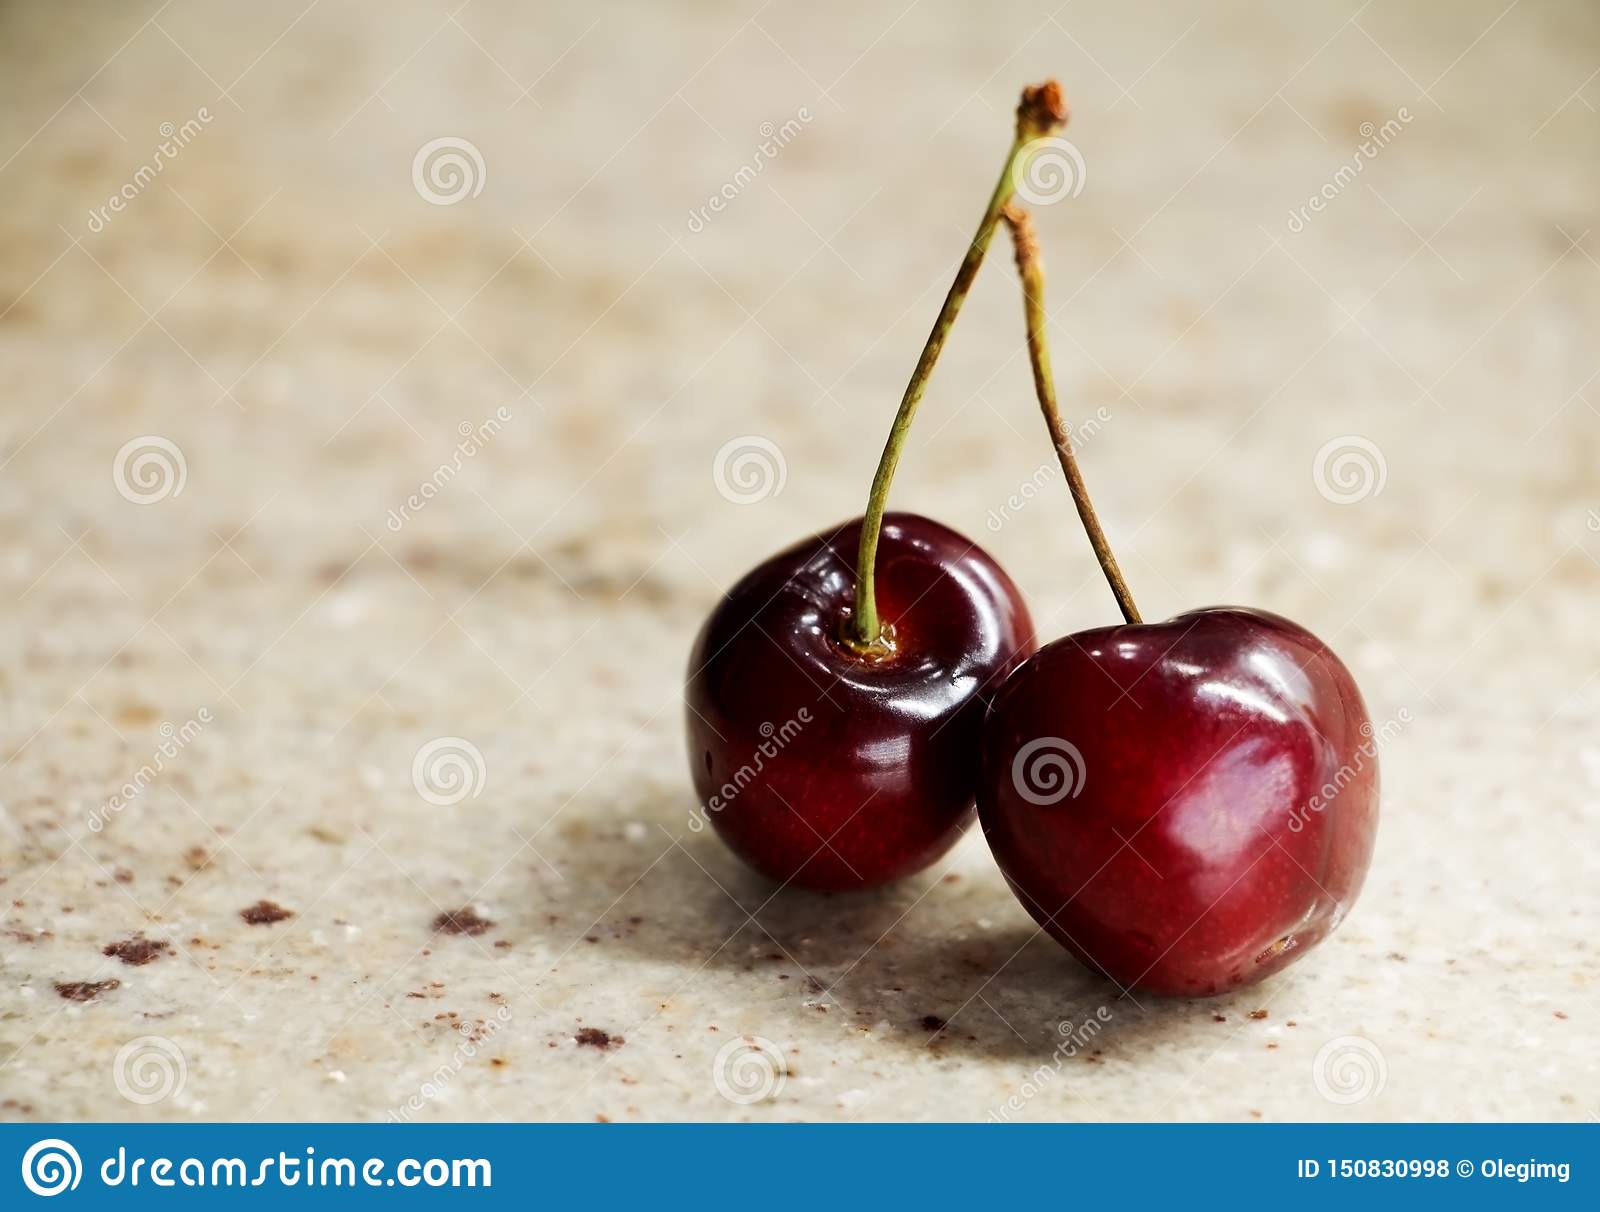 Bunch of sweet cherries on a granite table